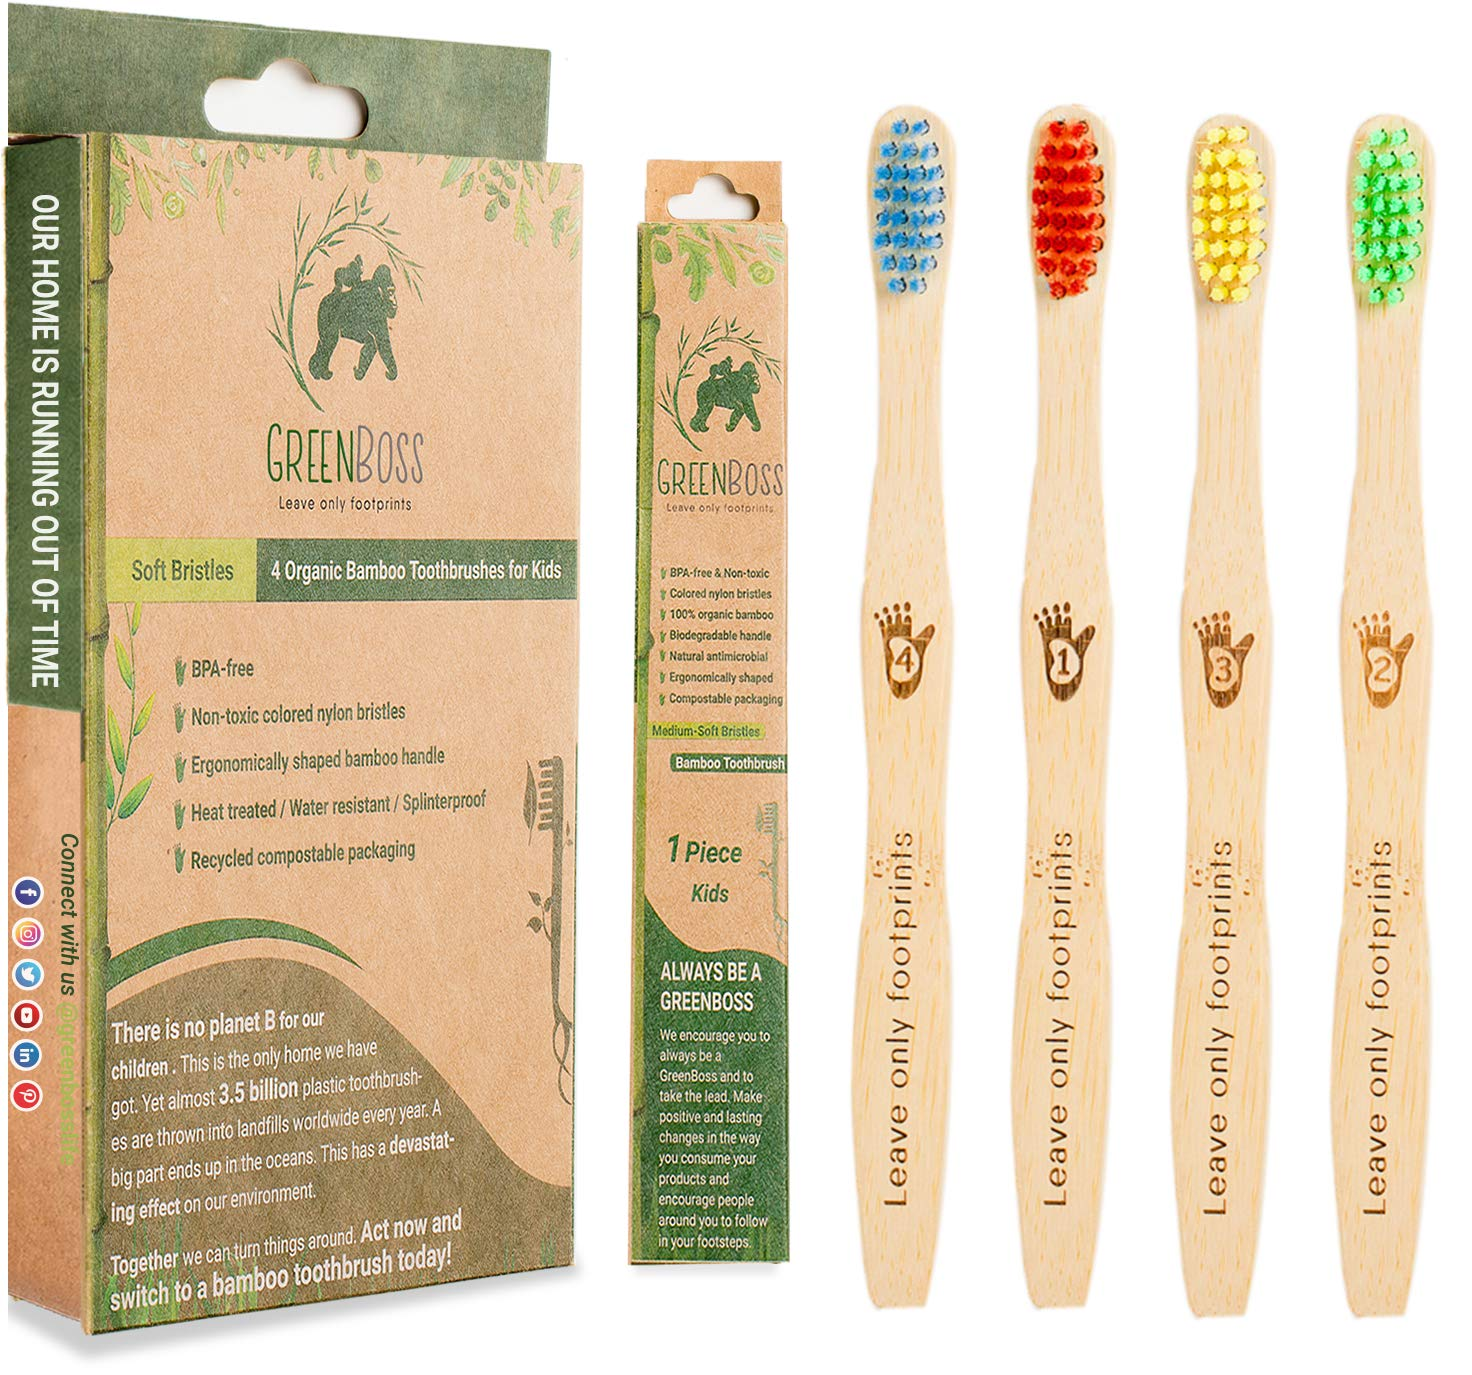 GreenBoss Bamboo Toothbrush with Charcoal Infused Bristles (Medium-Soft)   Pack of 4 Eco-Friendly, 100% Organic and Biodegradable Toothbrushes for Adults (Kids 4 Pack)